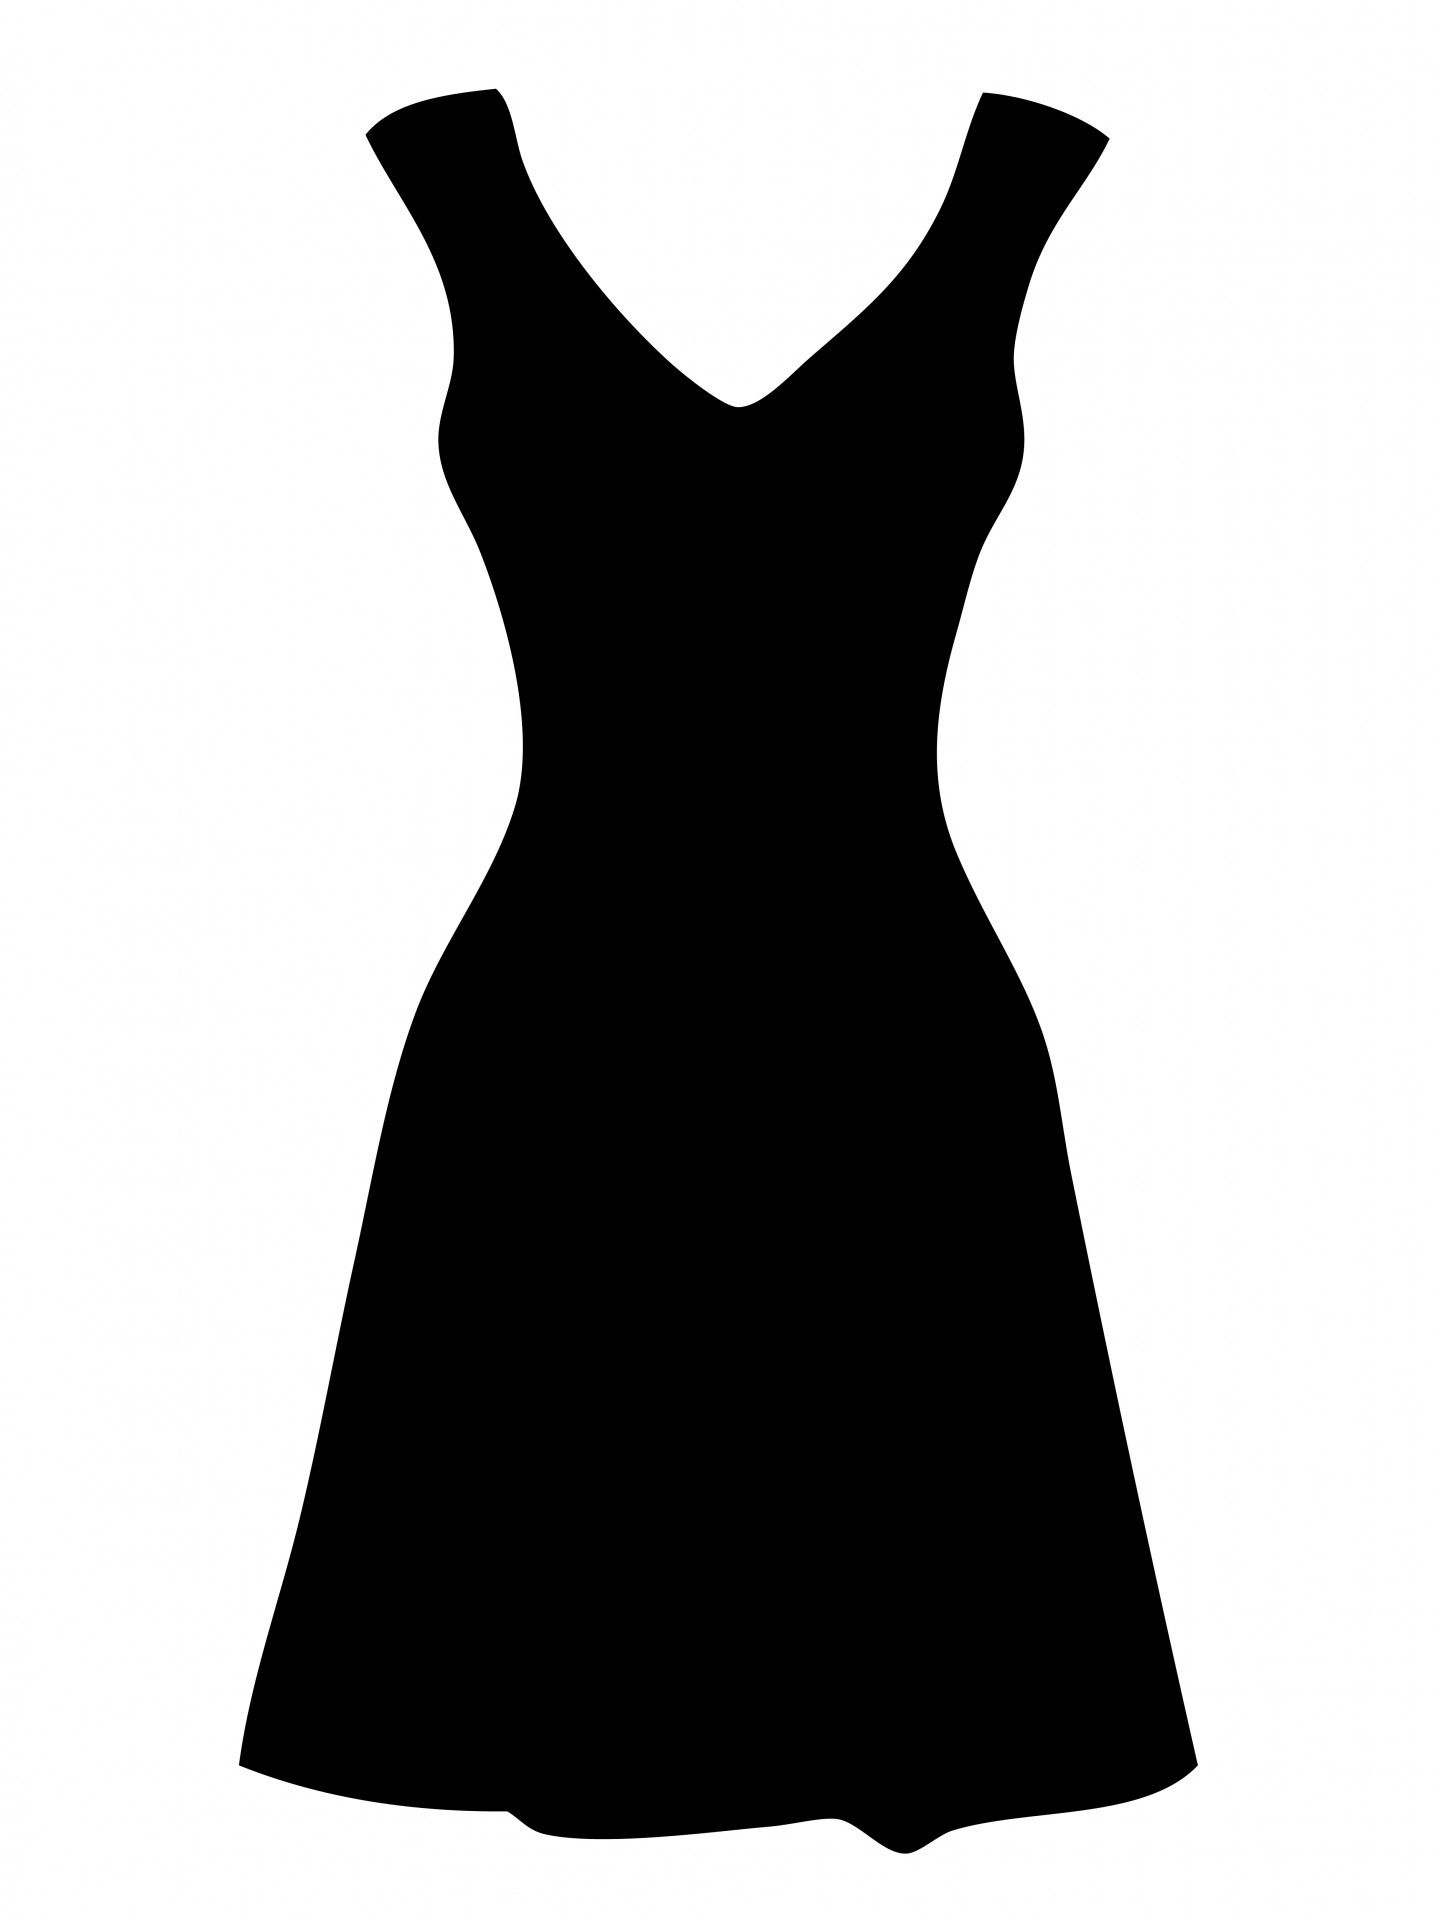 1440x1920 Free Clipart Of Dresses Black Dress Clipart By Karen Arnold